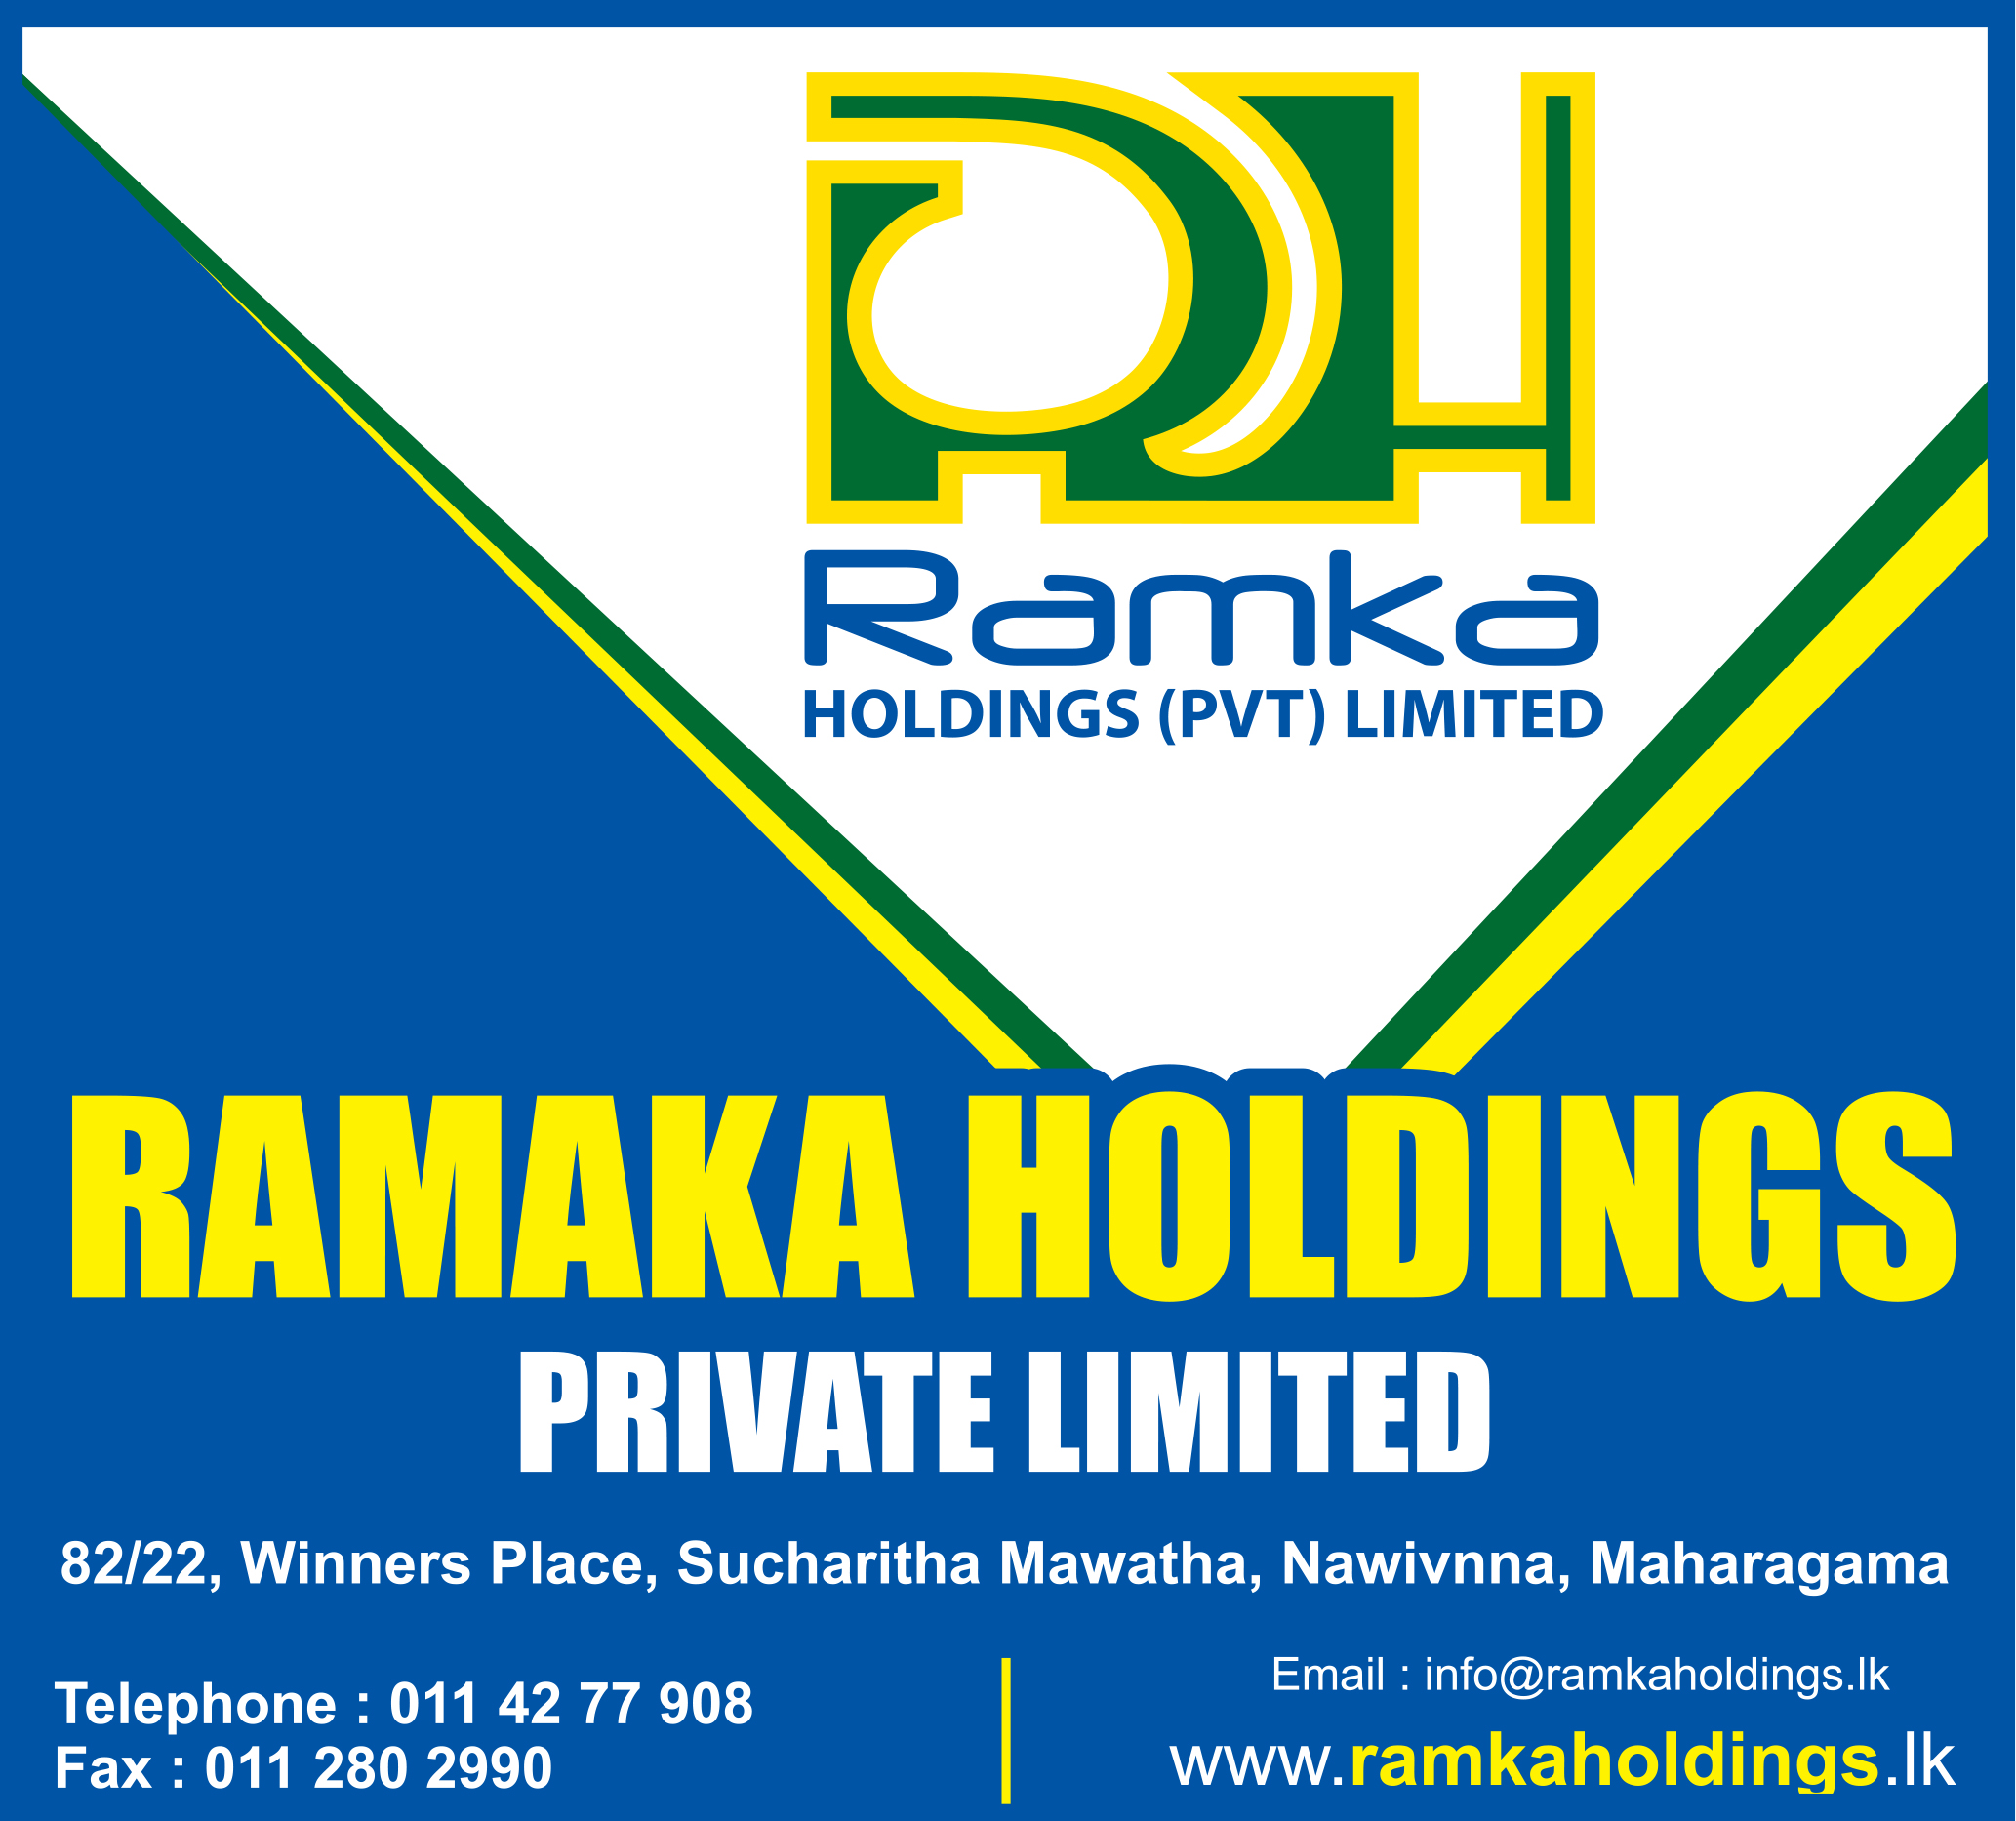 Ramka Holdings (Pvt) Ltd